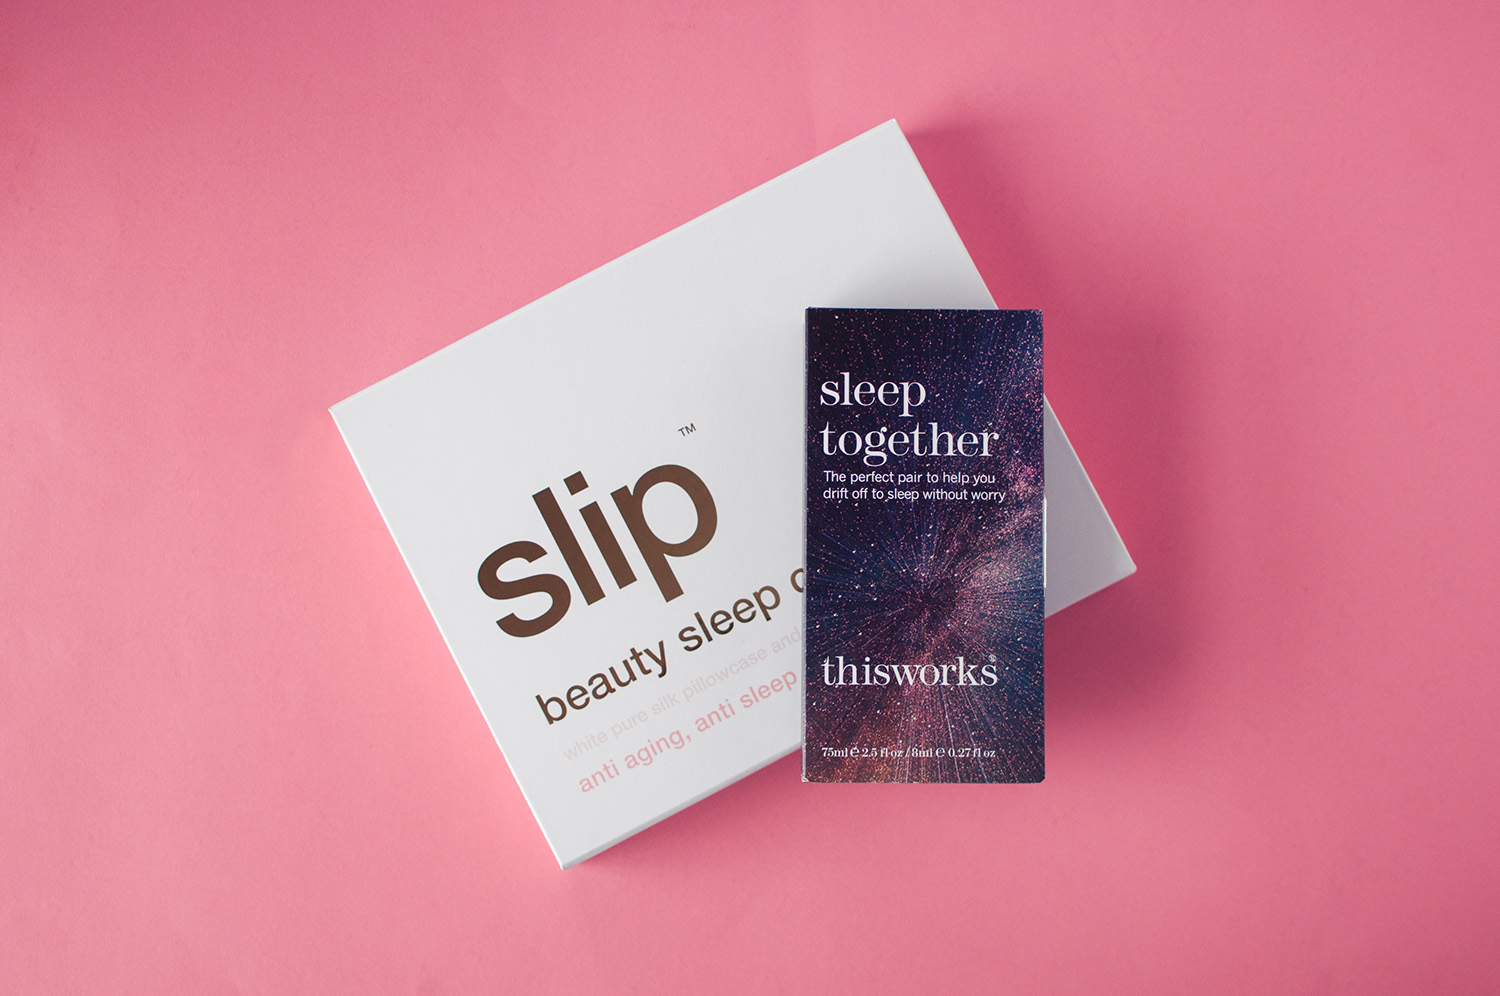 slip beauty collection, slip silk beauty collection, this works sleep together, universal beauty gifts, last minute beauty gifts, last minute skincare gifts, last minute dermstore gifts, last minute luxury gifts